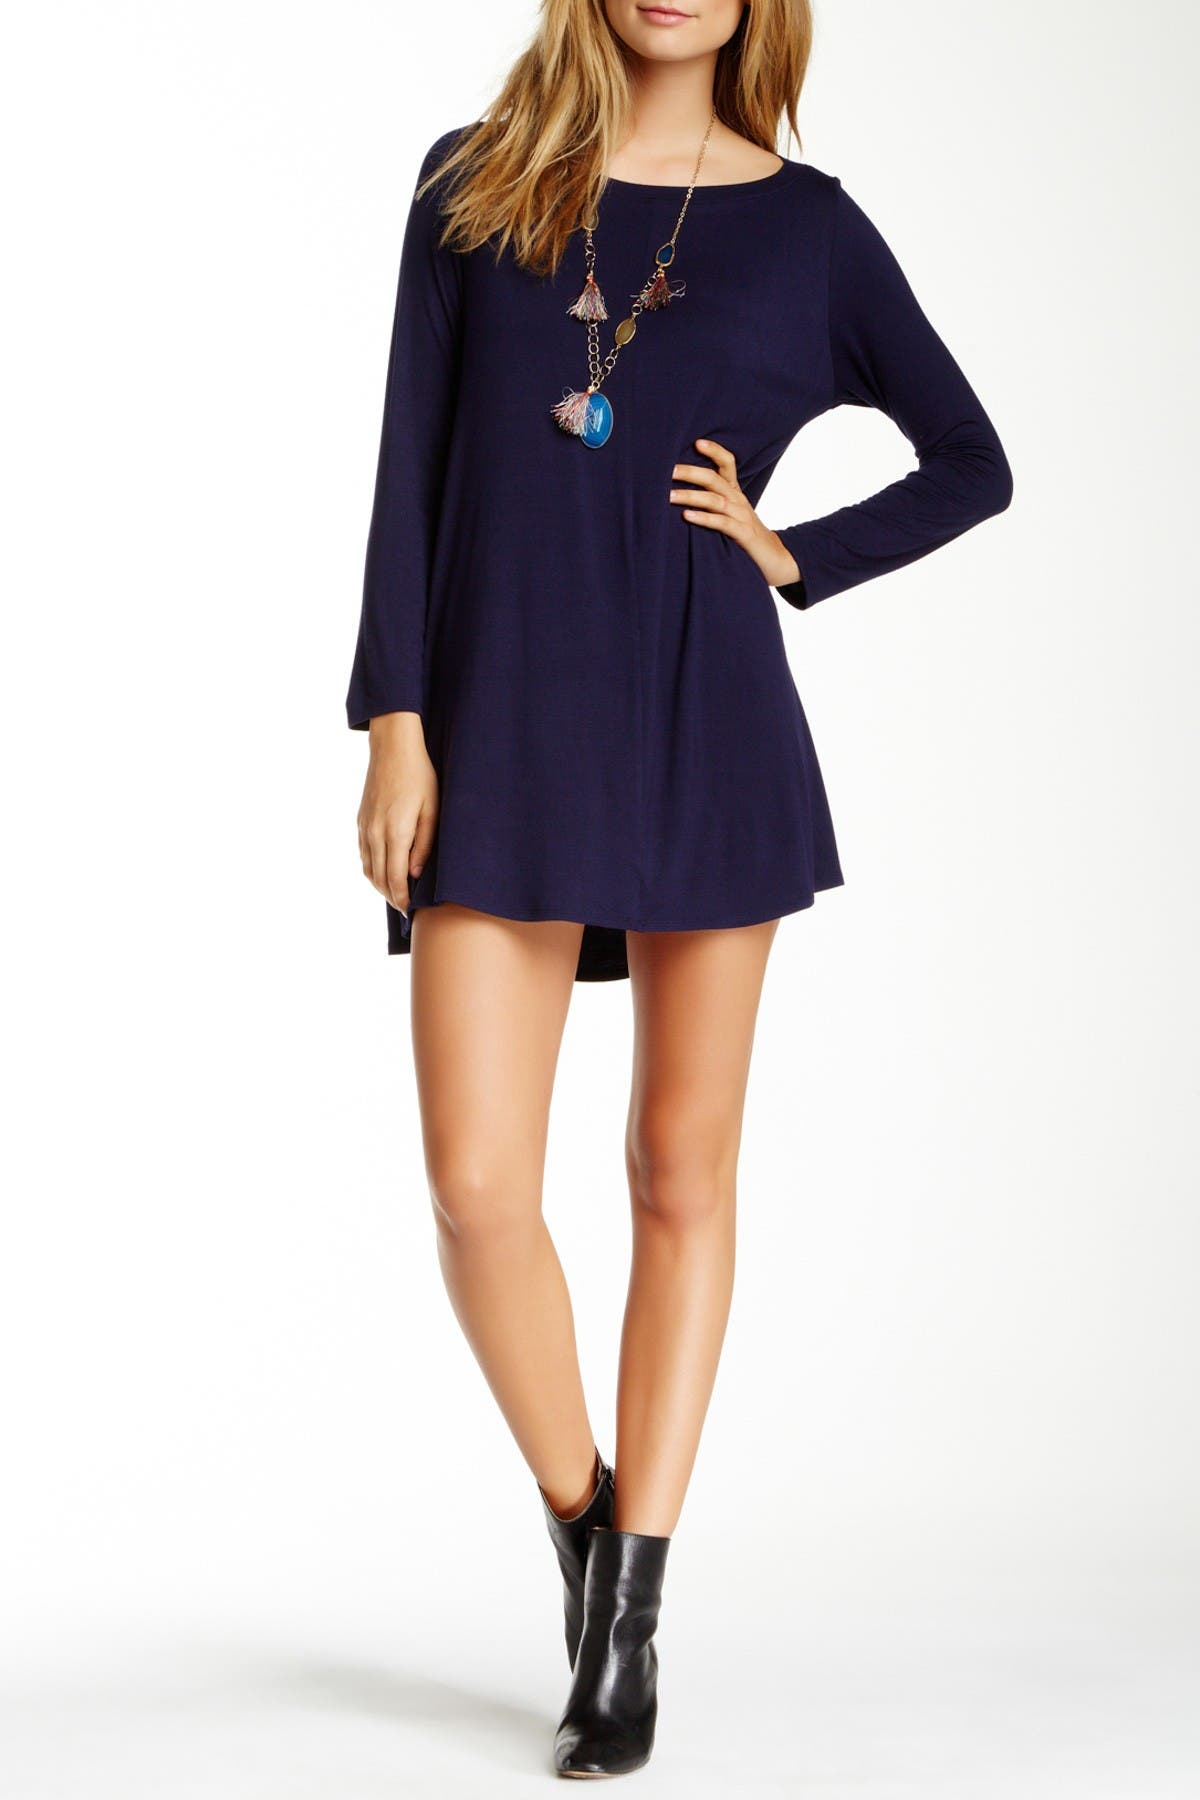 Image of Go Couture Long Sleeve Boat Neck Dress